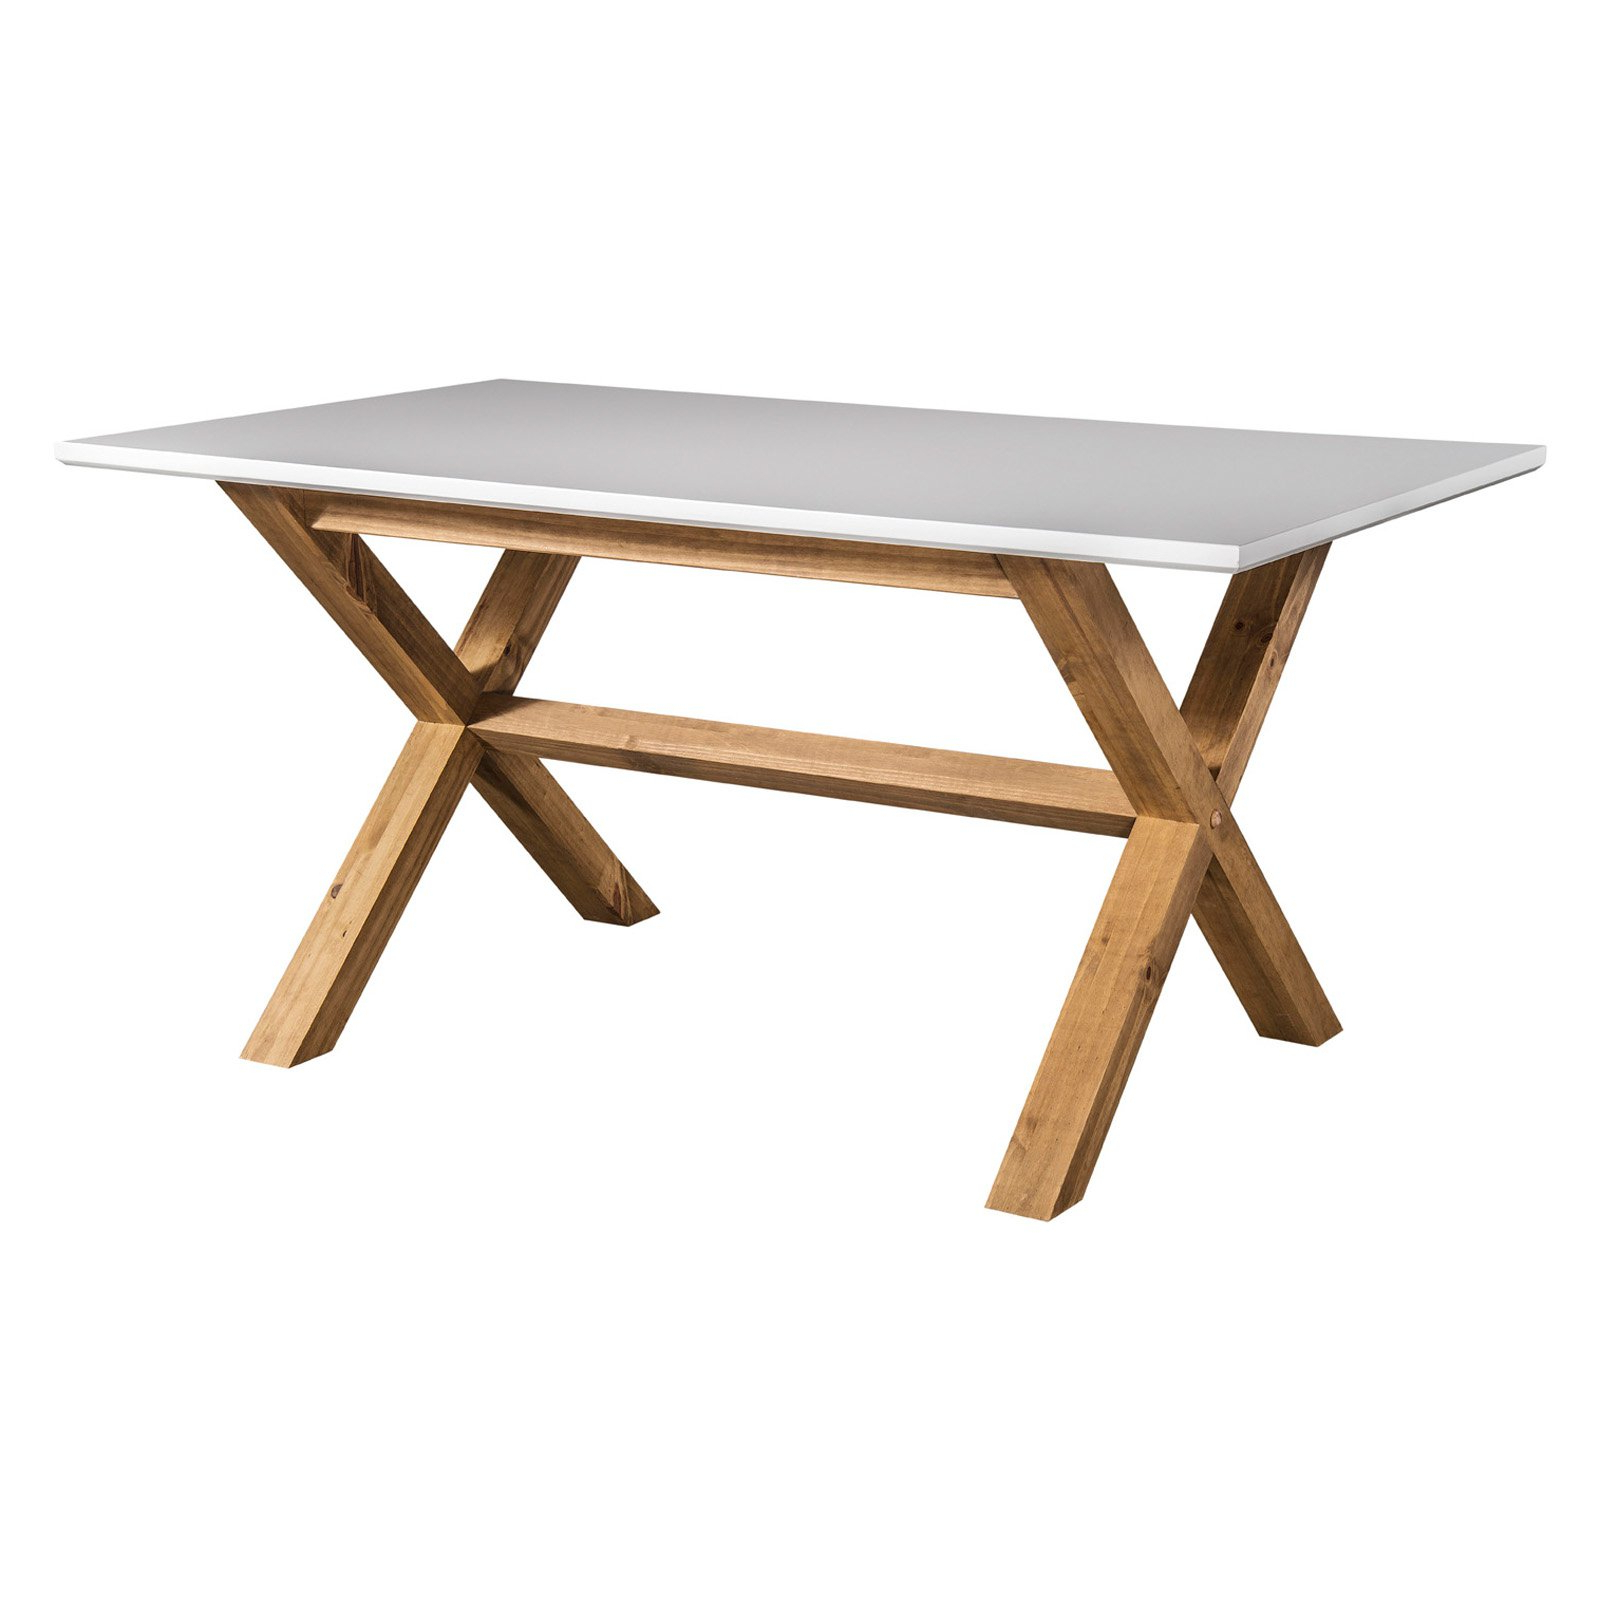 Rustic Mid Century Modern Barclay 6 Seating Dining Table In White And  Natural Wood – Walmart With Regard To Best And Newest Rustic Mid Century Modern 6 Seating Dining Tables In White And Natural Wood (View 27 of 30)